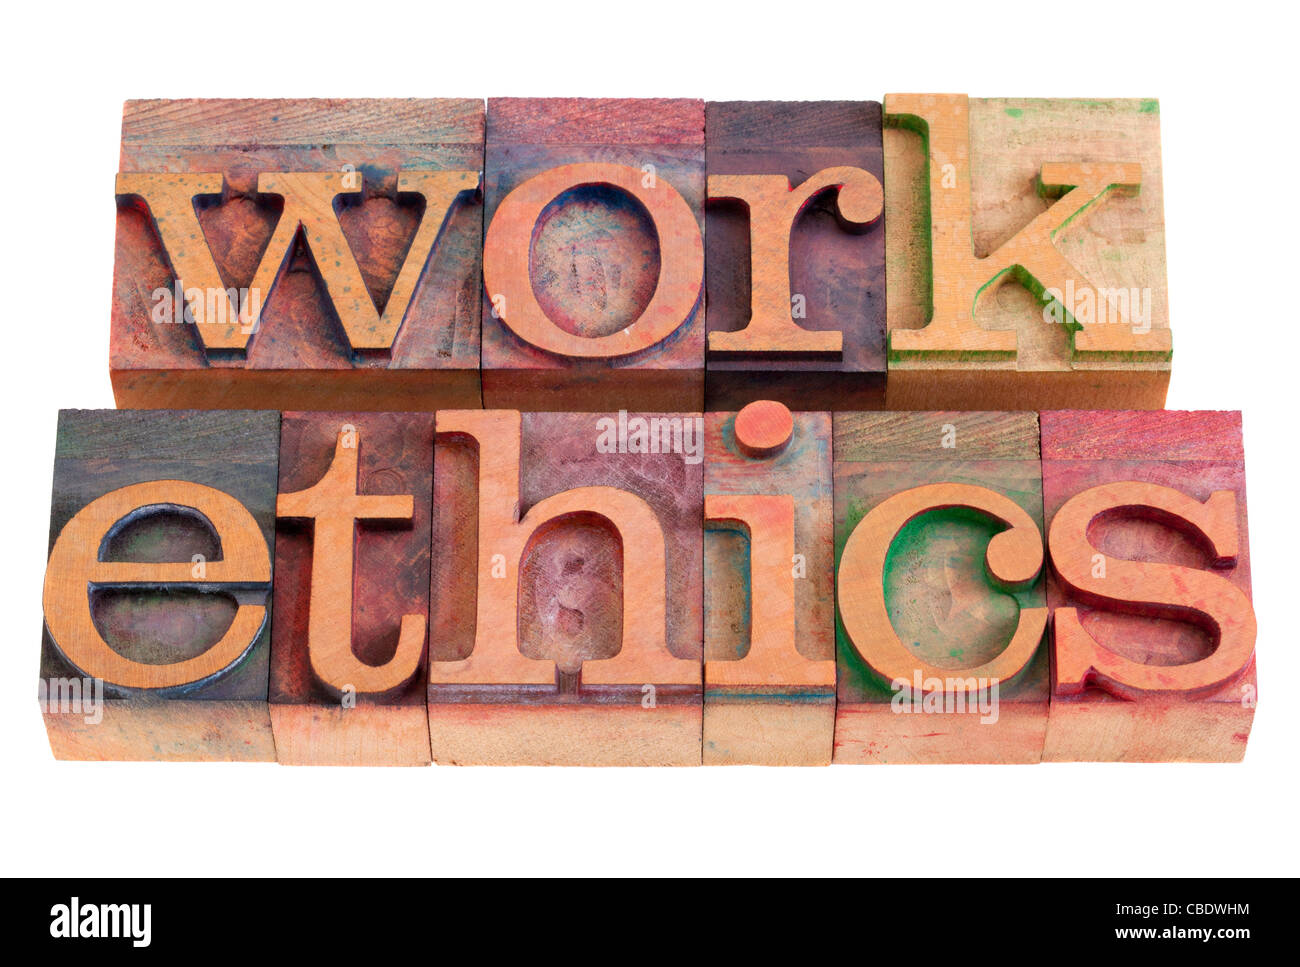 work ethics concept - words in vintage wooden letterpress printing blocks, stained by color inks, isolated on white - Stock Image